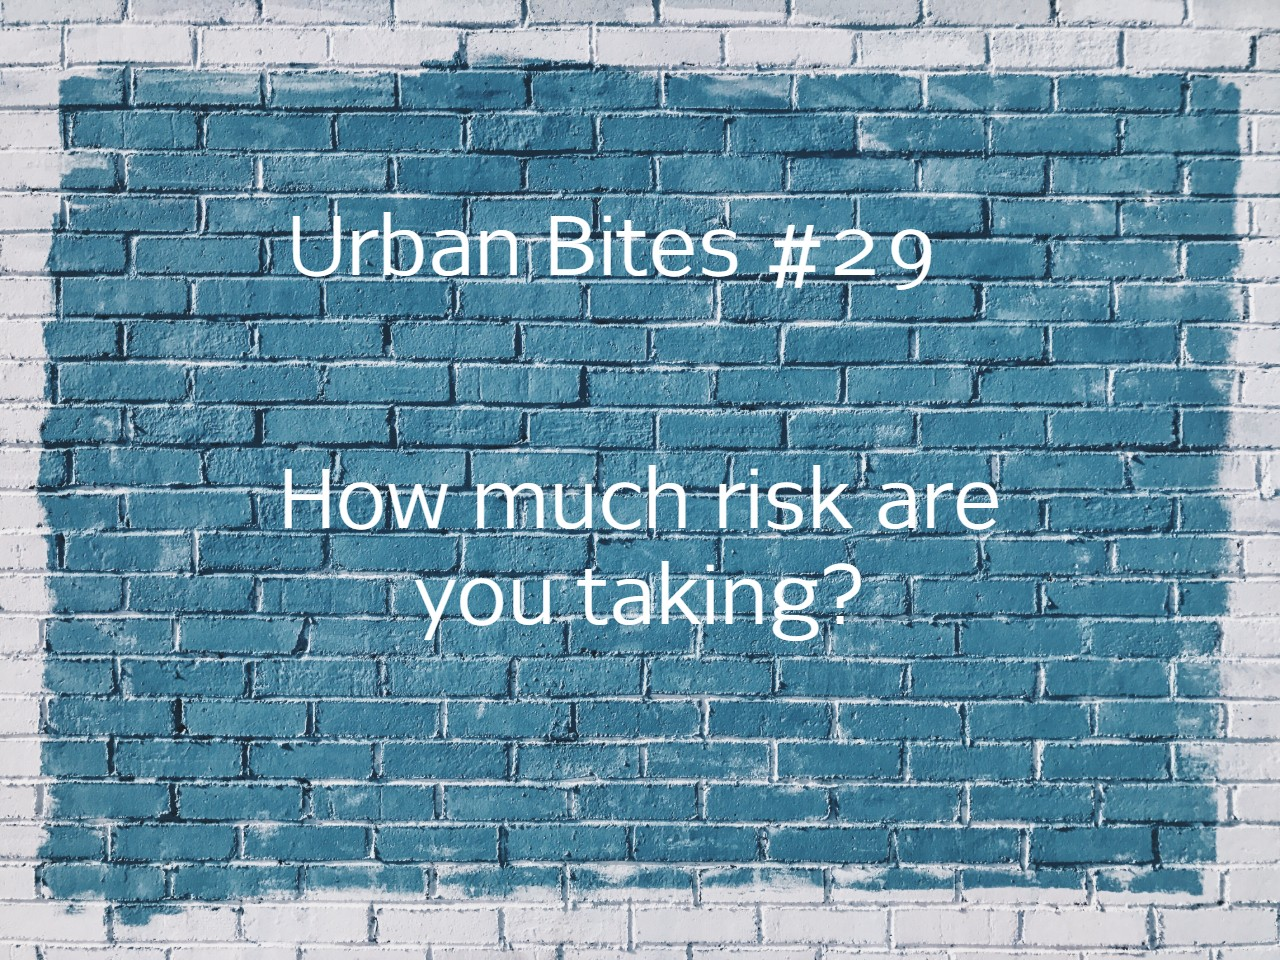 Urban Bites #29 - How much risk are you taking?